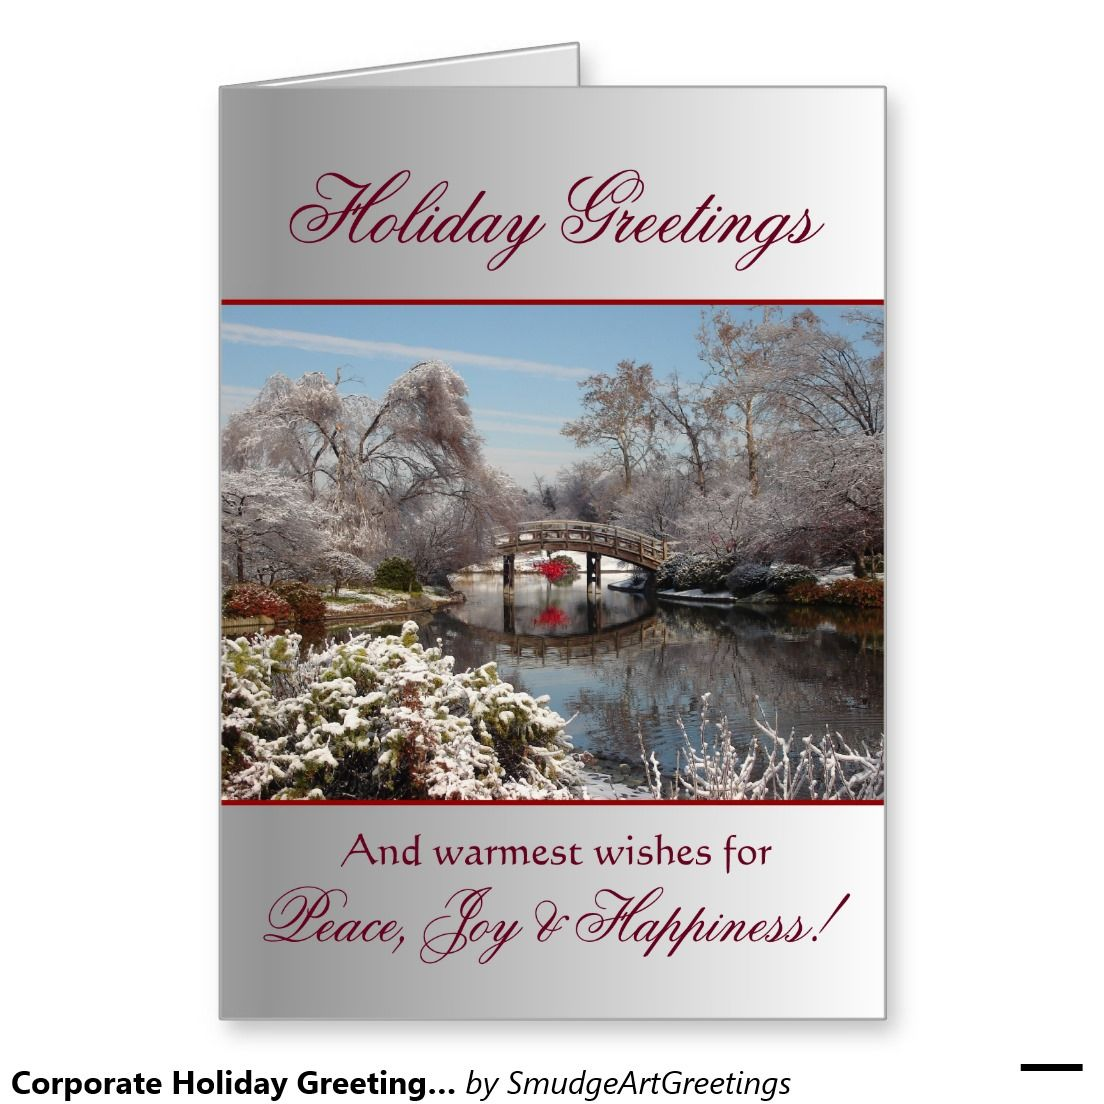 Corporate Holiday Greetings Peacejoyhappiness Business